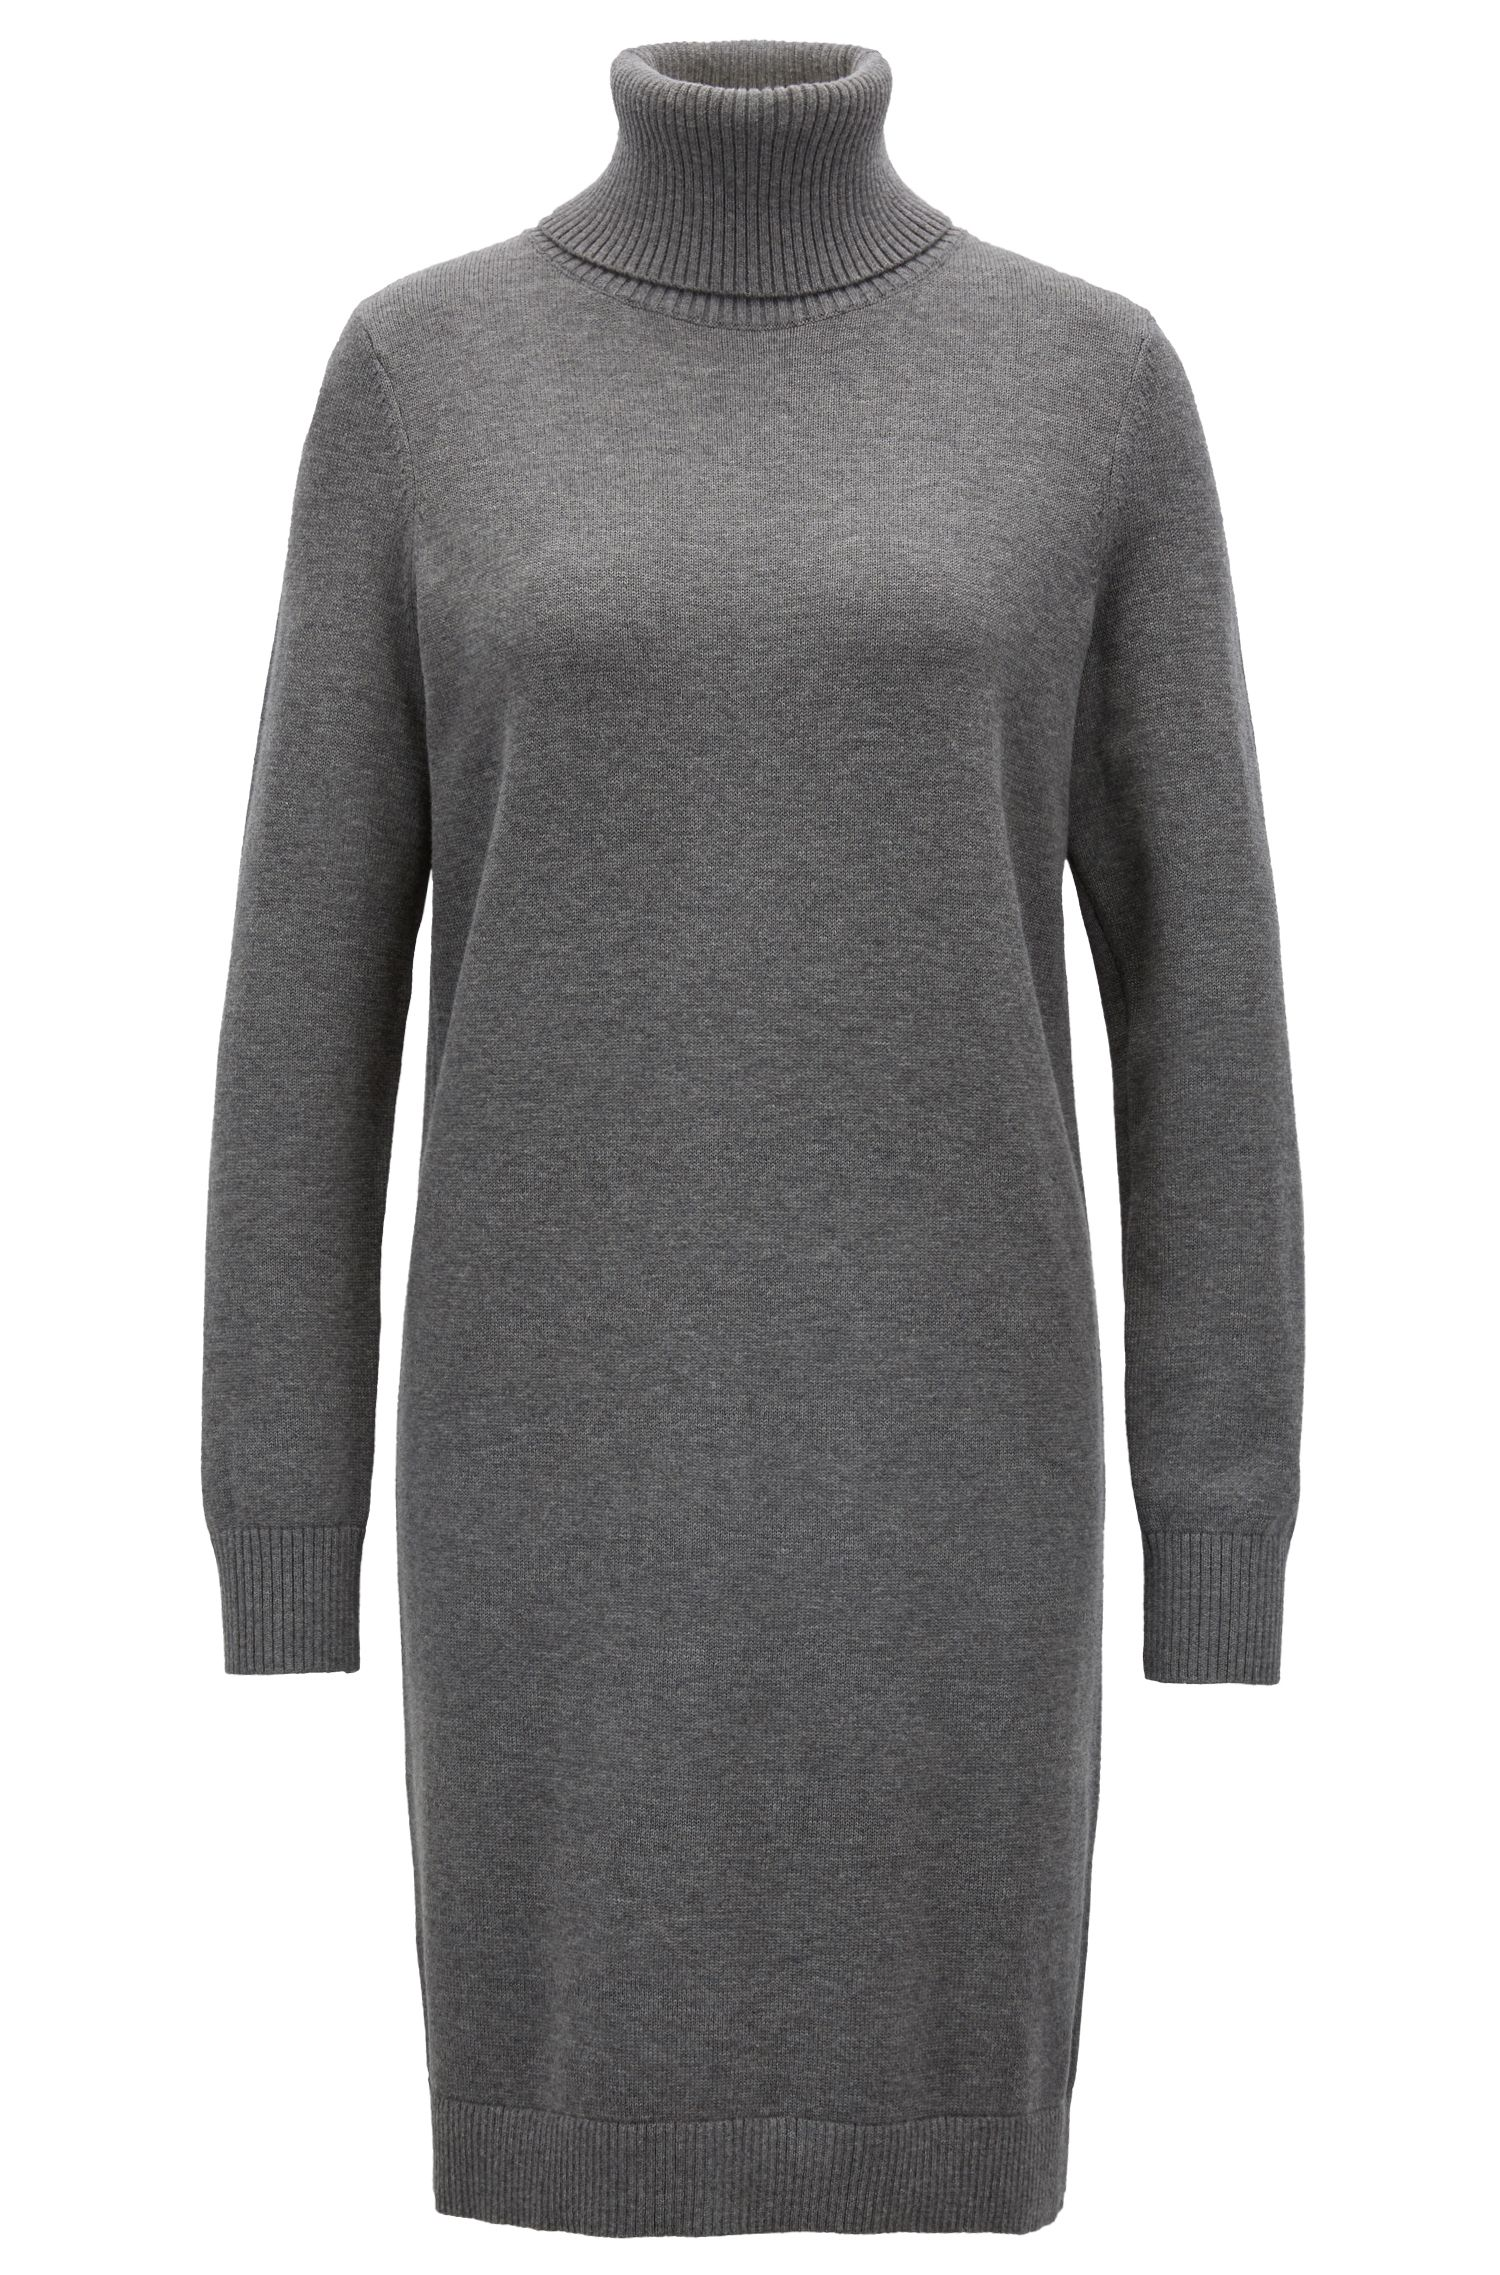 Roll-neck sweater dress in a virgin wool-cotton blend, Anthracite